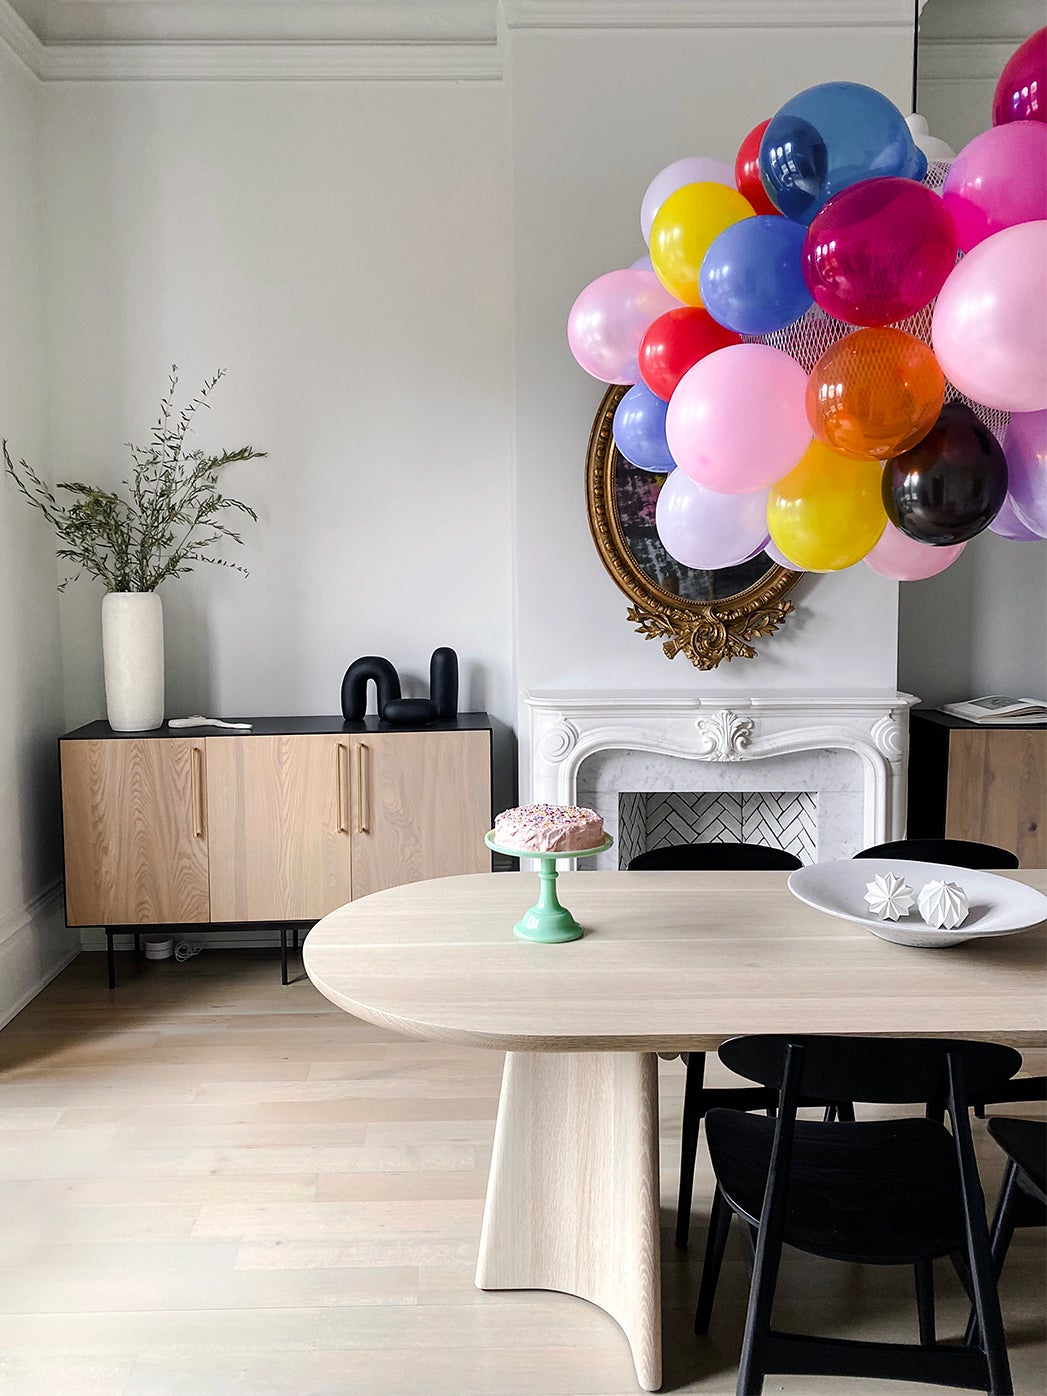 dining table with balloons over it